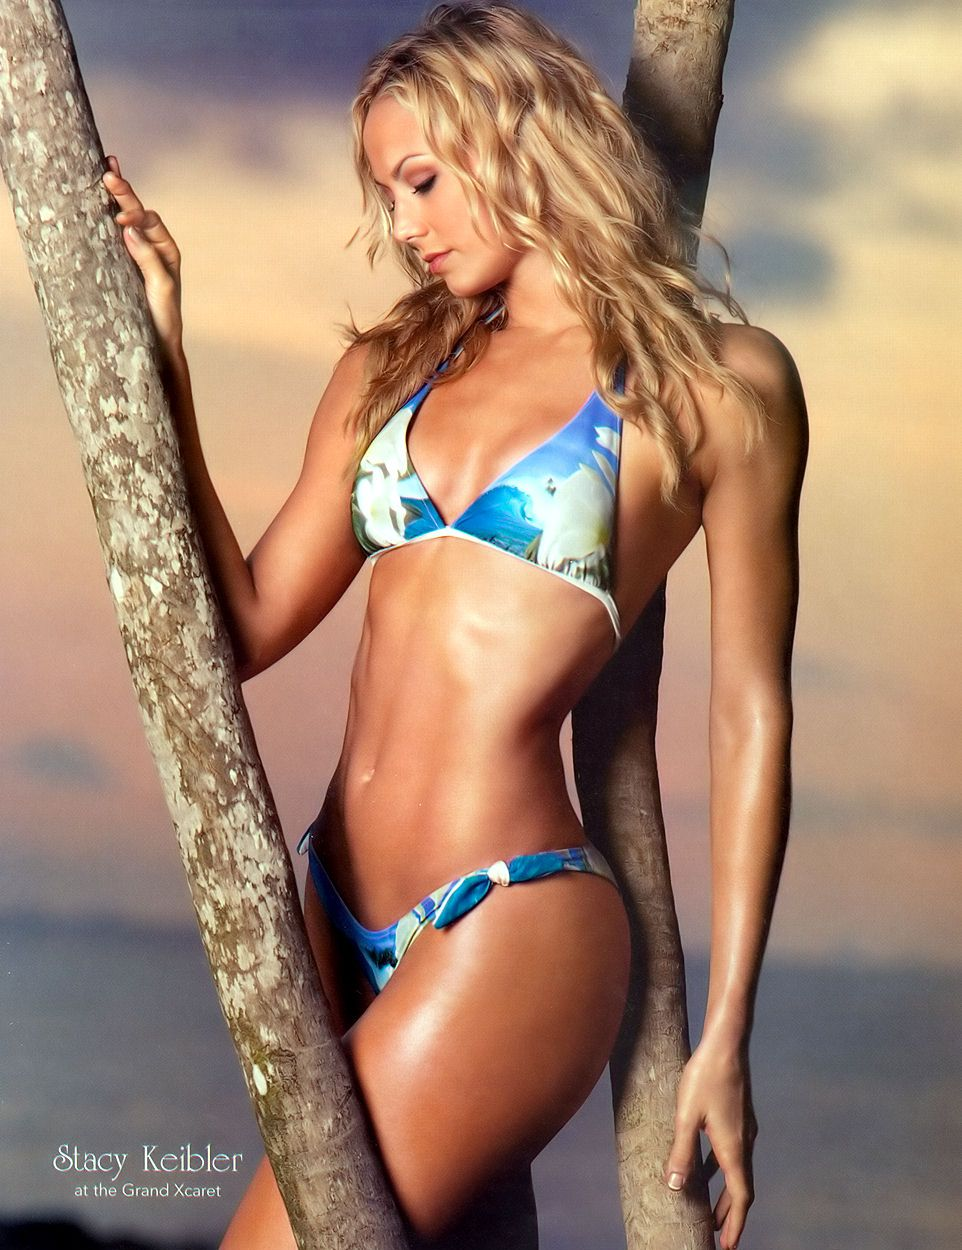 stacy keibler too hot